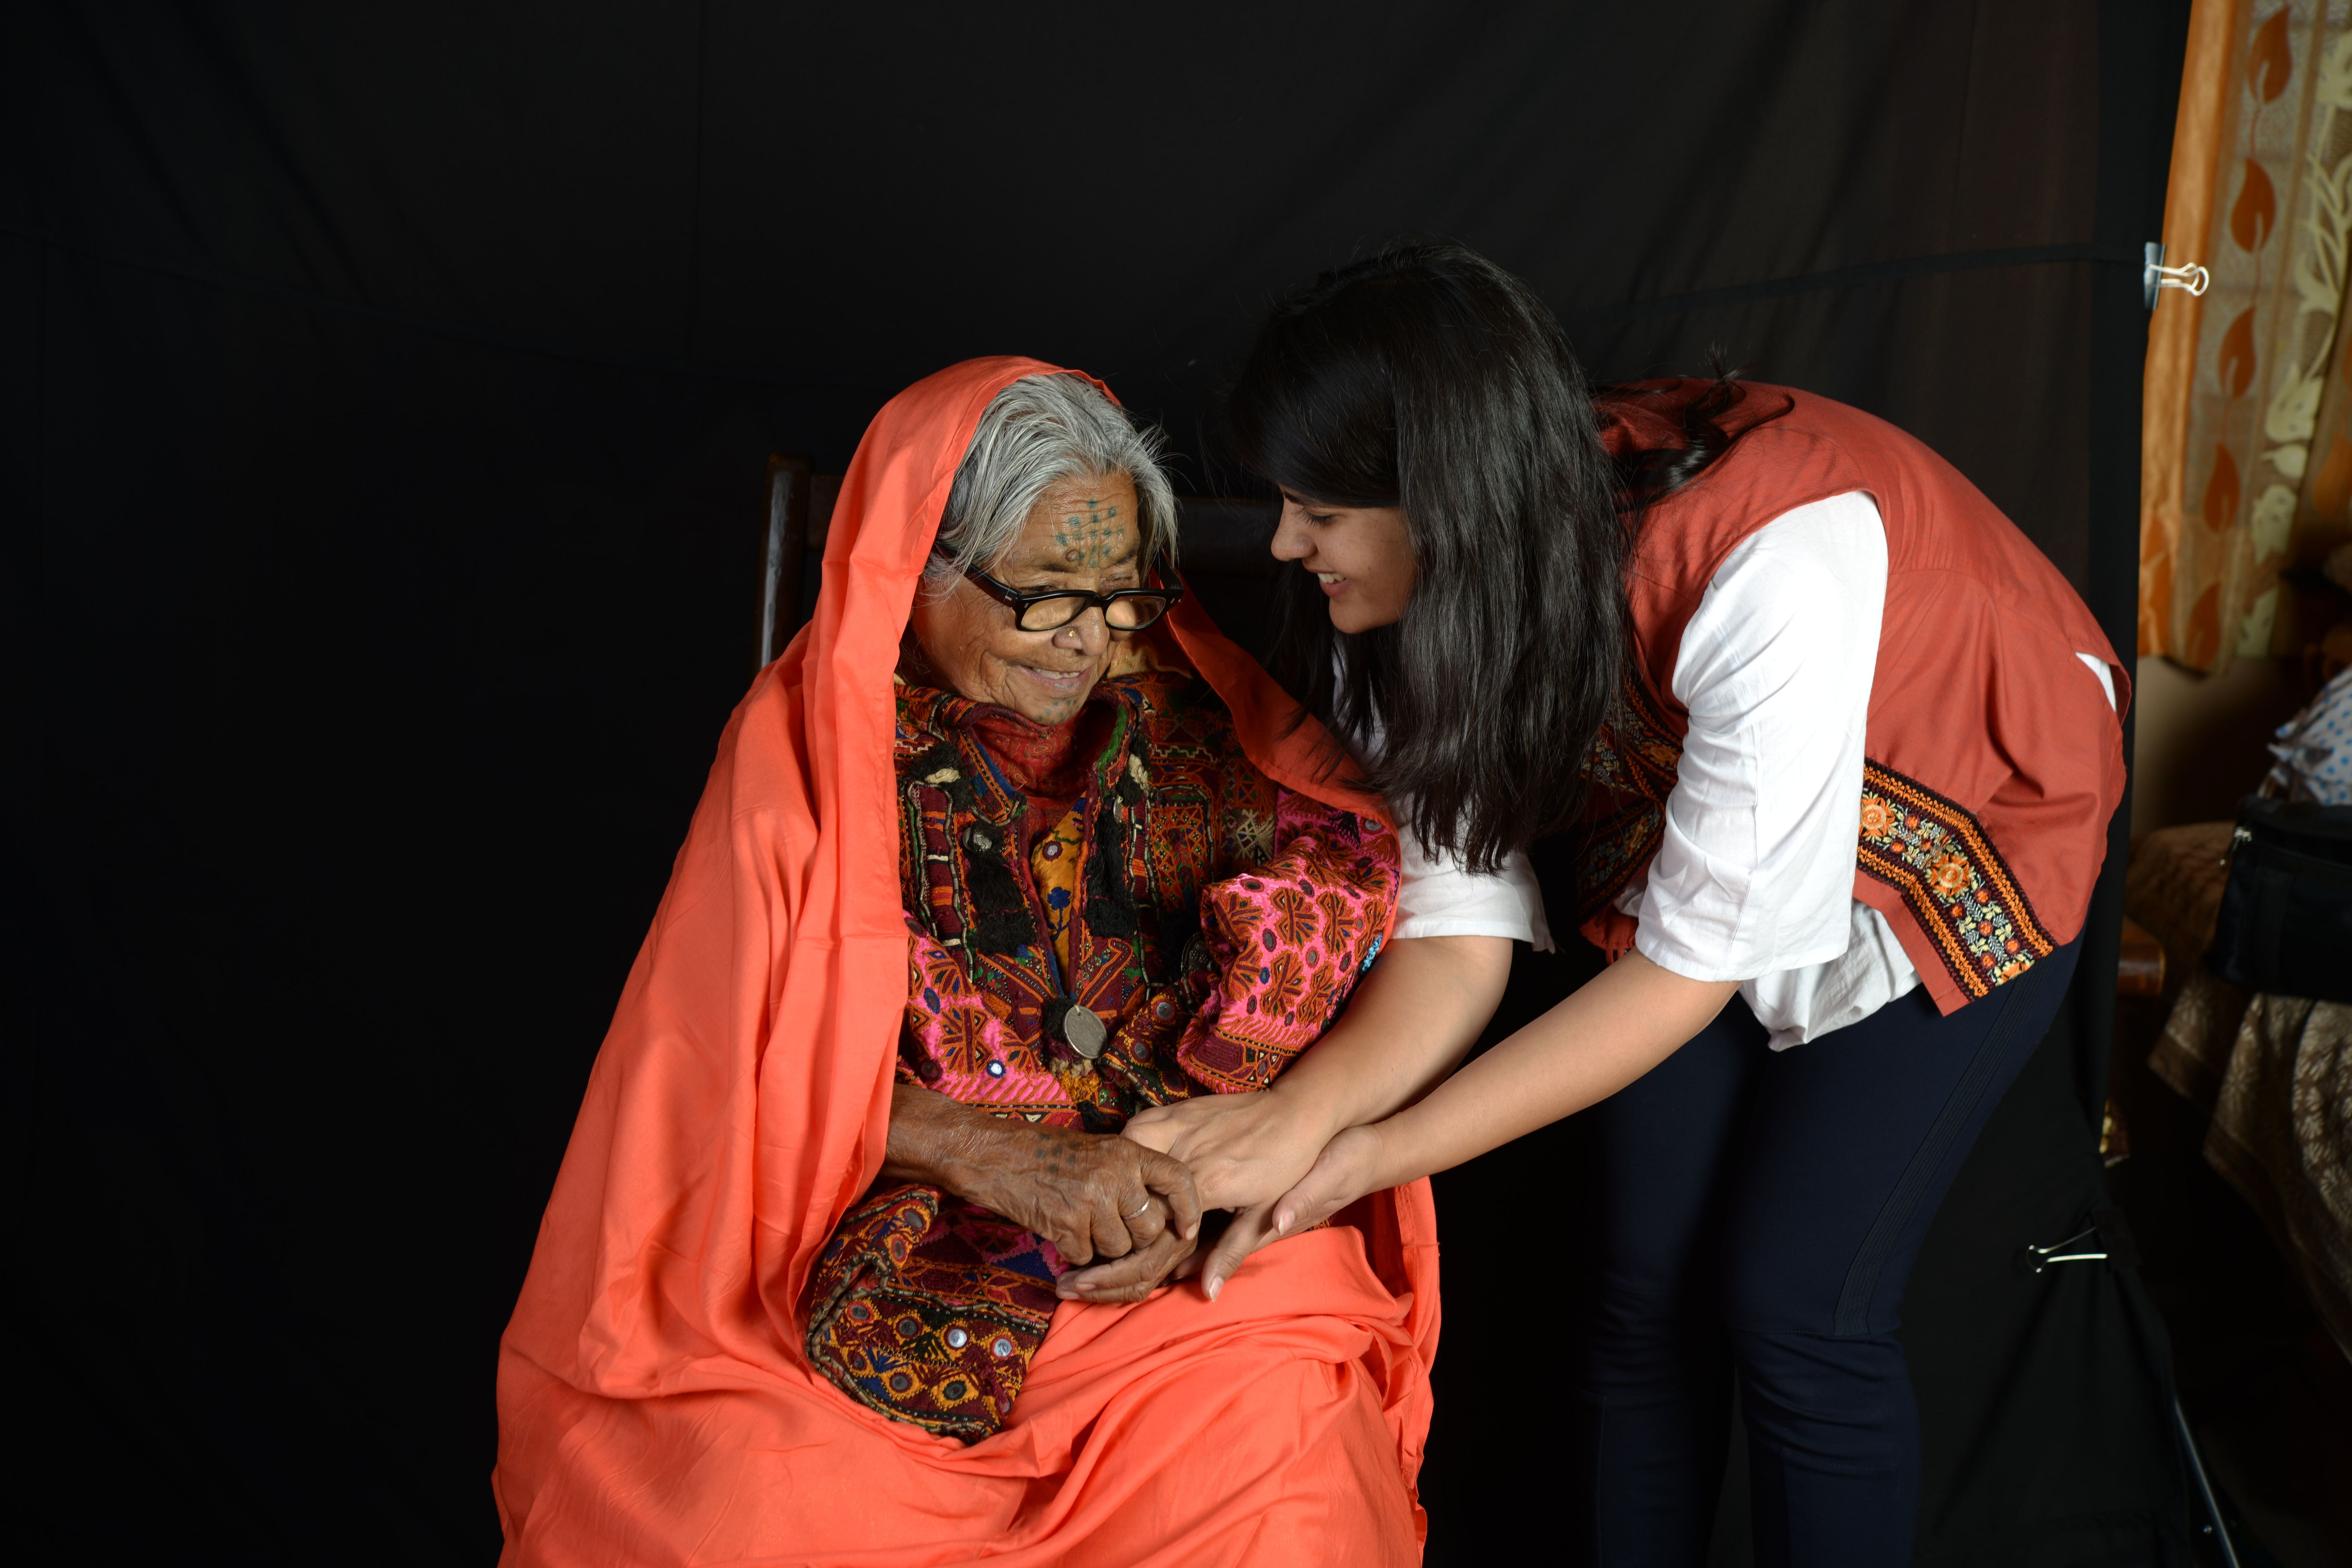 Hindu Pashtun: How One Woman Uncovered India's Forgotten